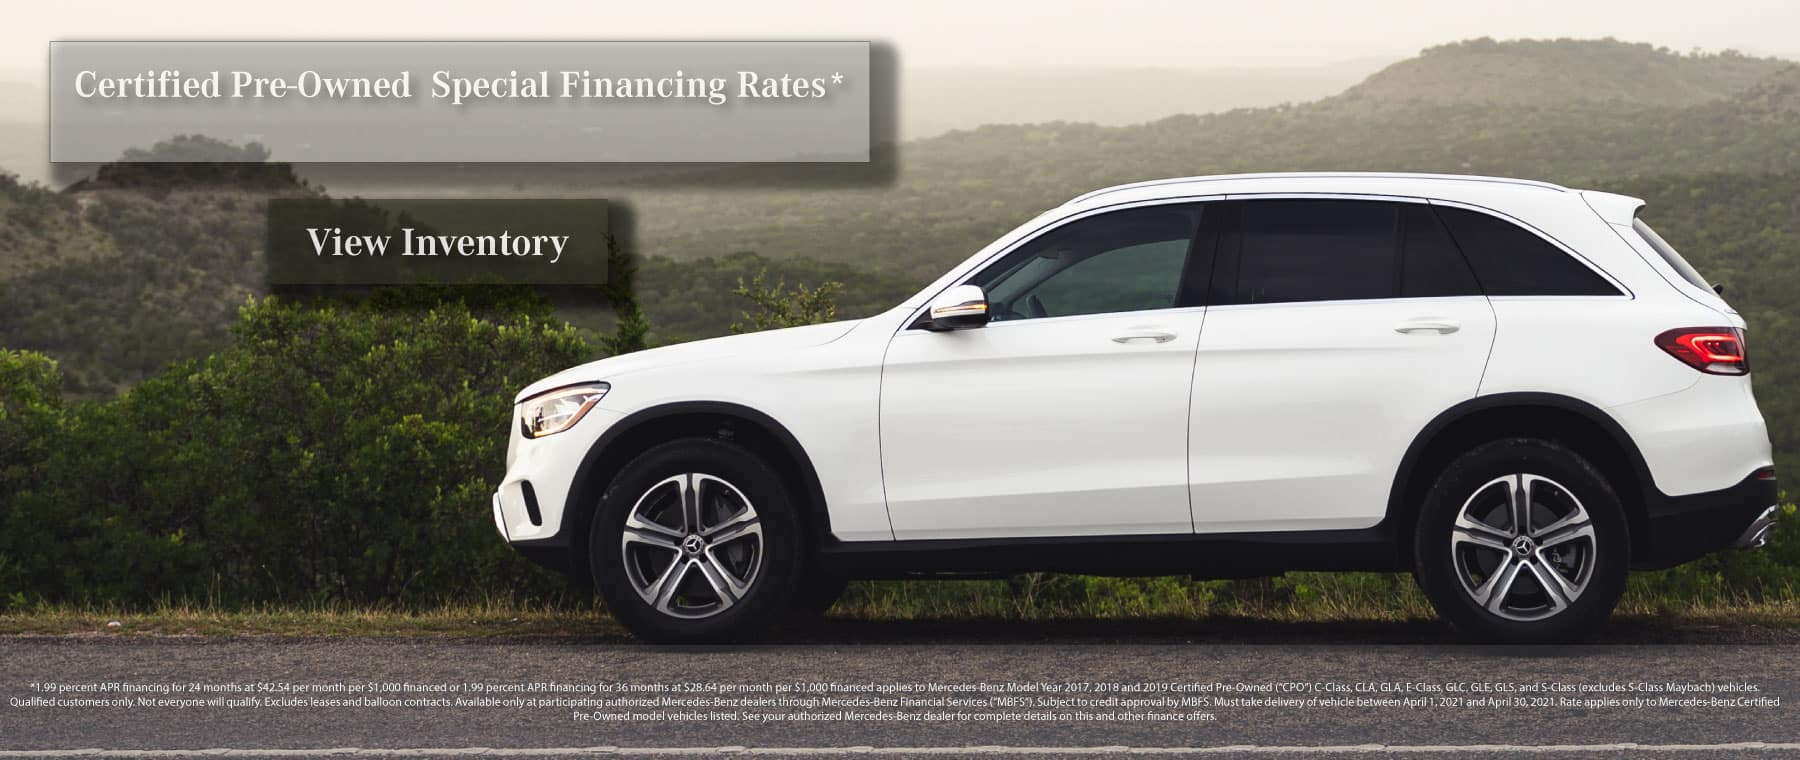 Mercedes-Benz Certified Pre Owned Finance Specials